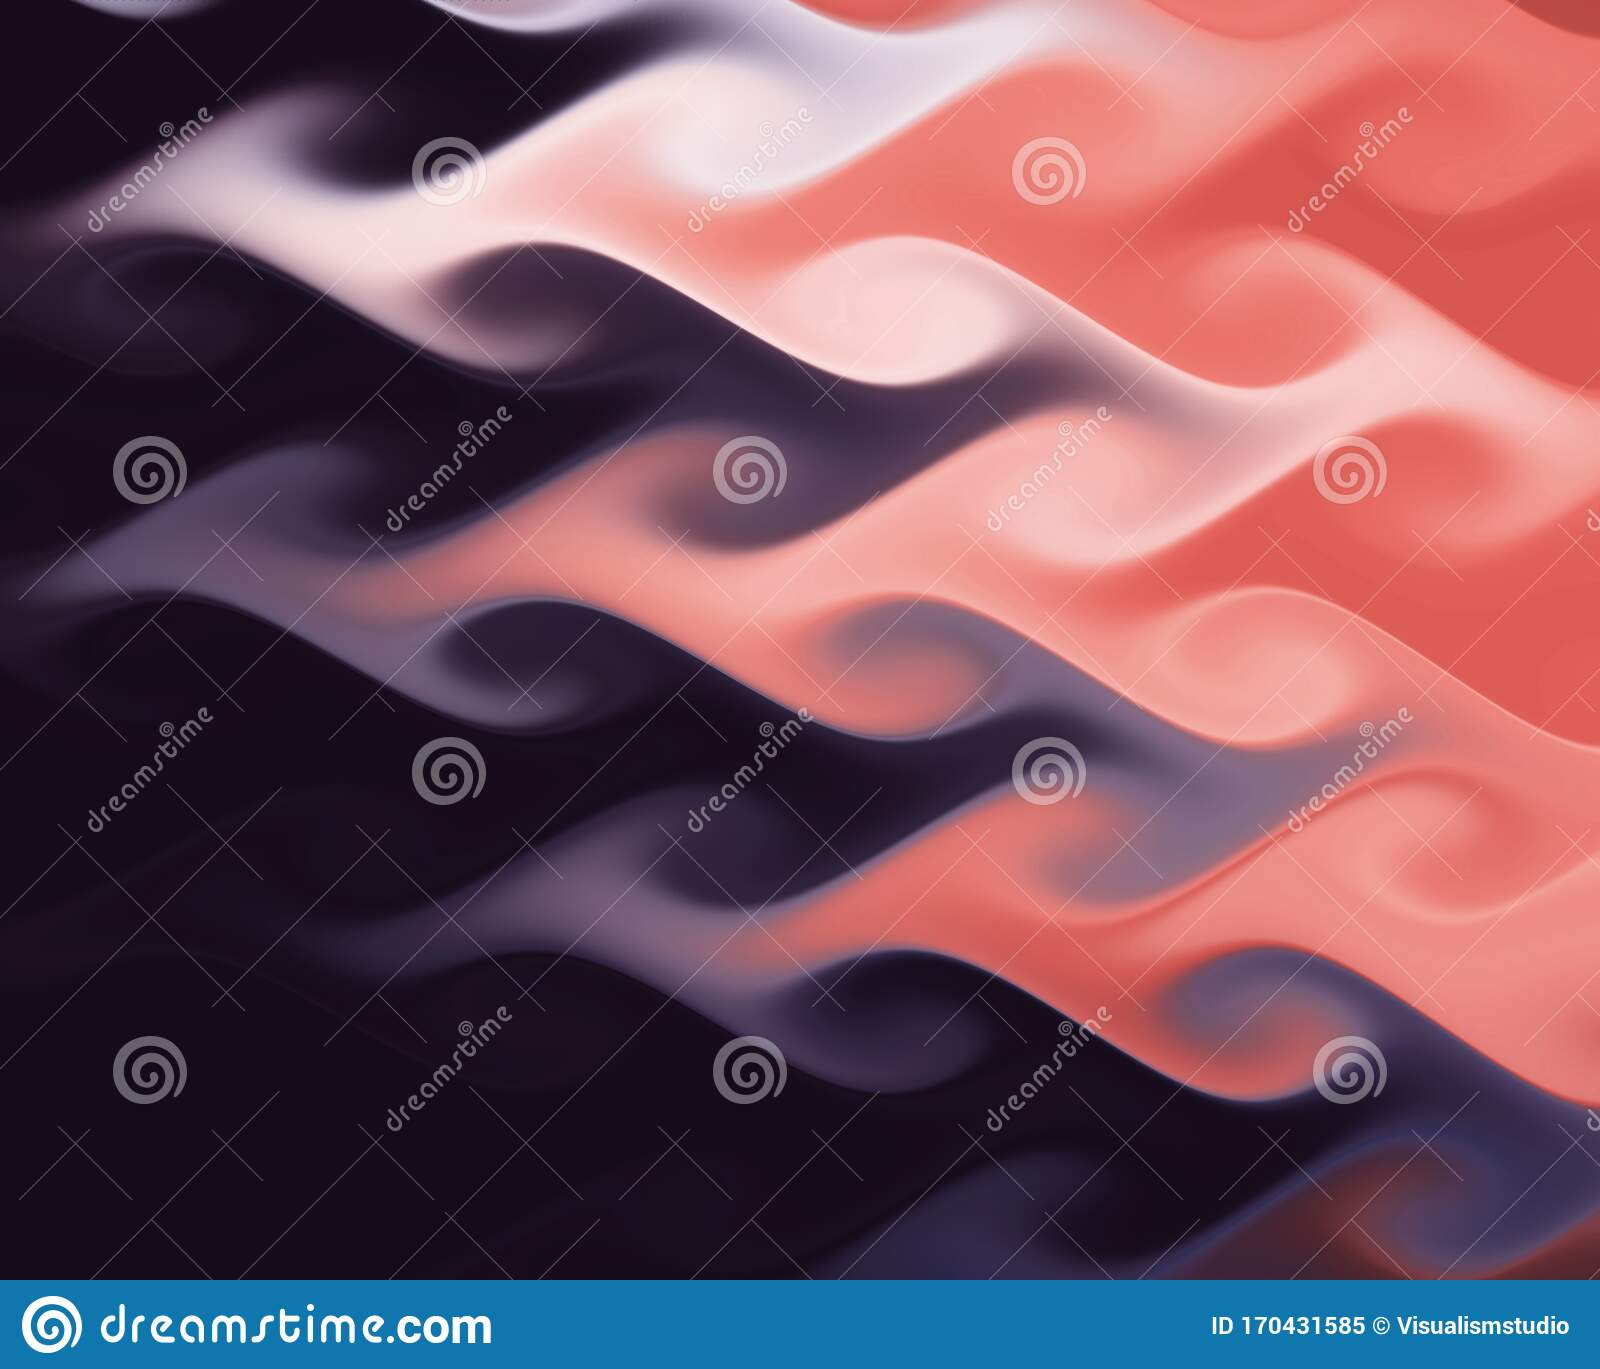 dark red blue abstract flames colorful wave background elegant wallpaper design bright fresh conceptual texture 170431585